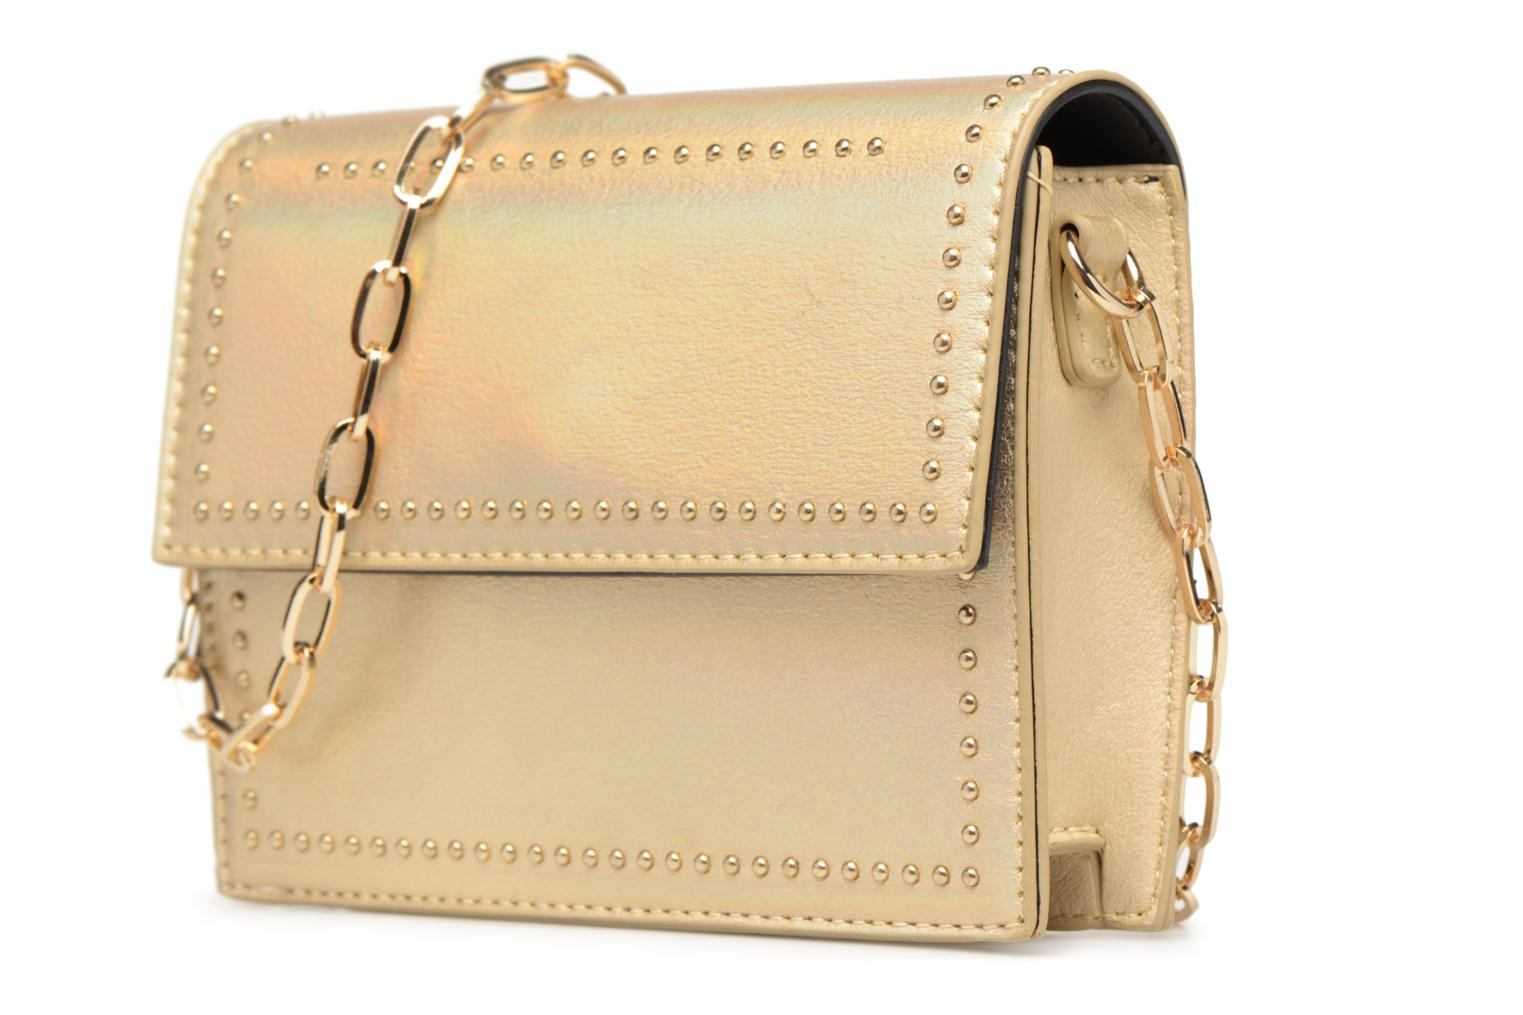 Gold Street Level crossbody Mettalic chainstrap O88Pgz